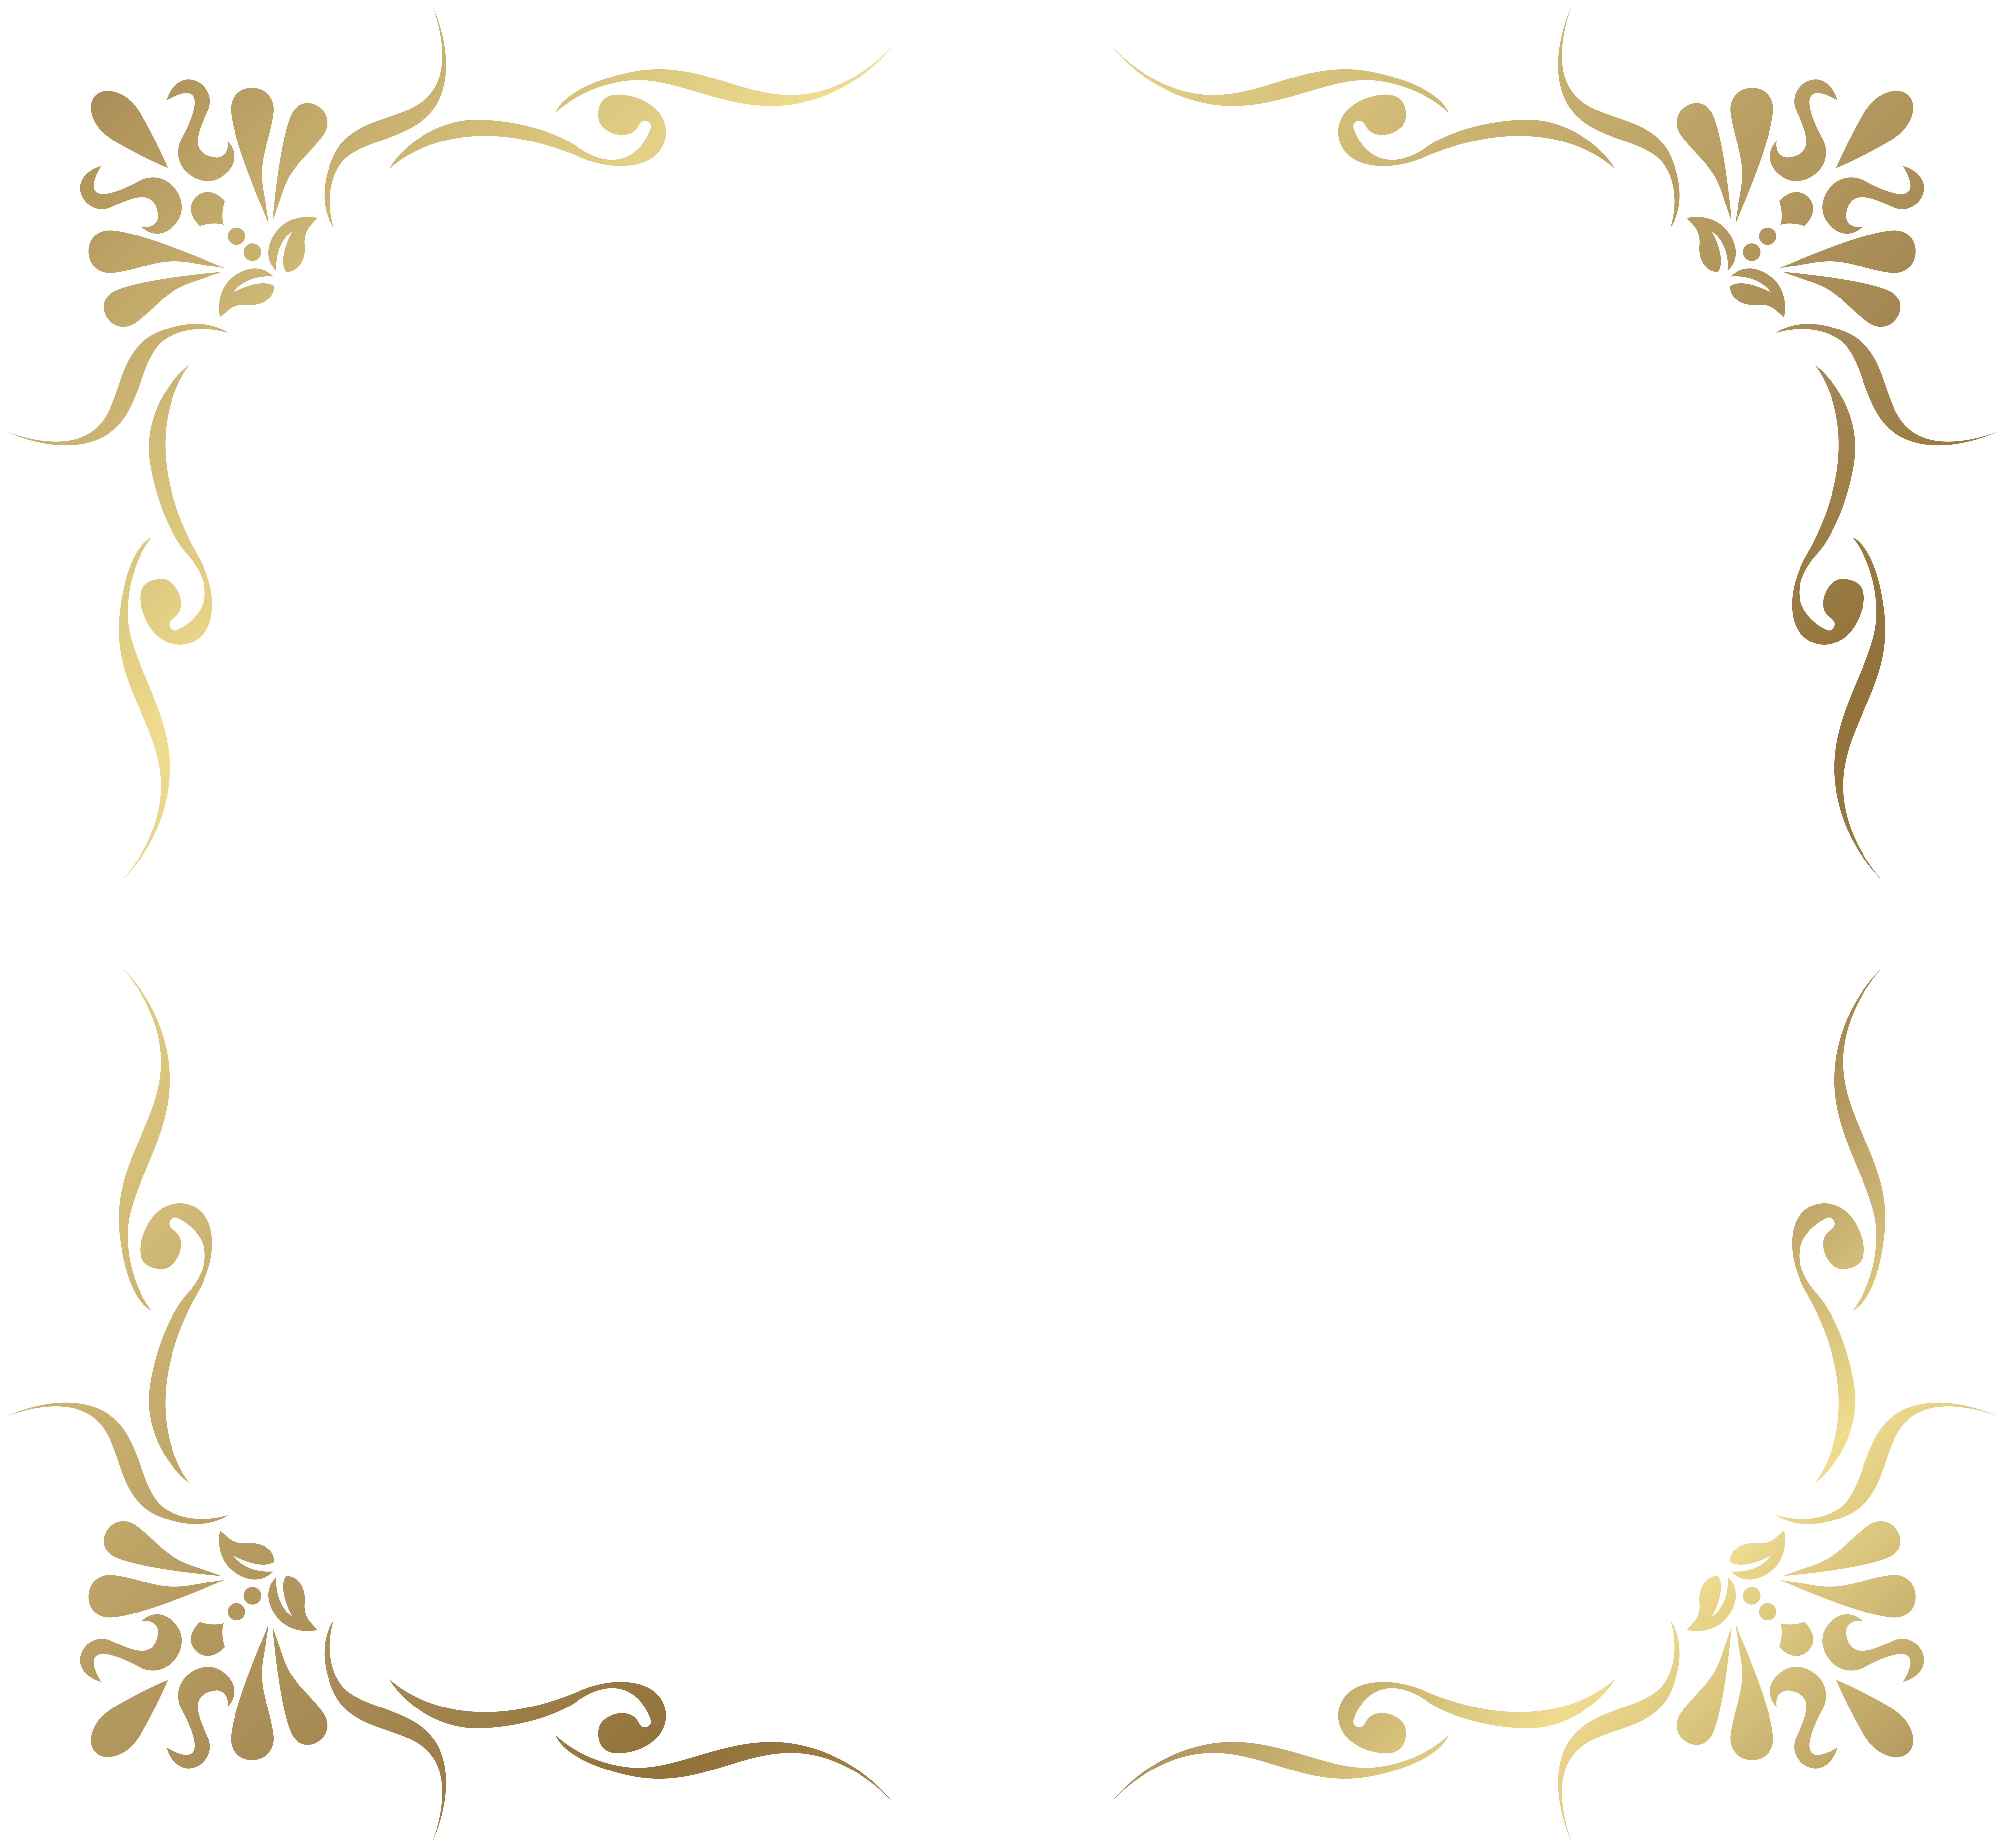 Clipart borderwith transparent background vector Floral Border Transparent Background vector